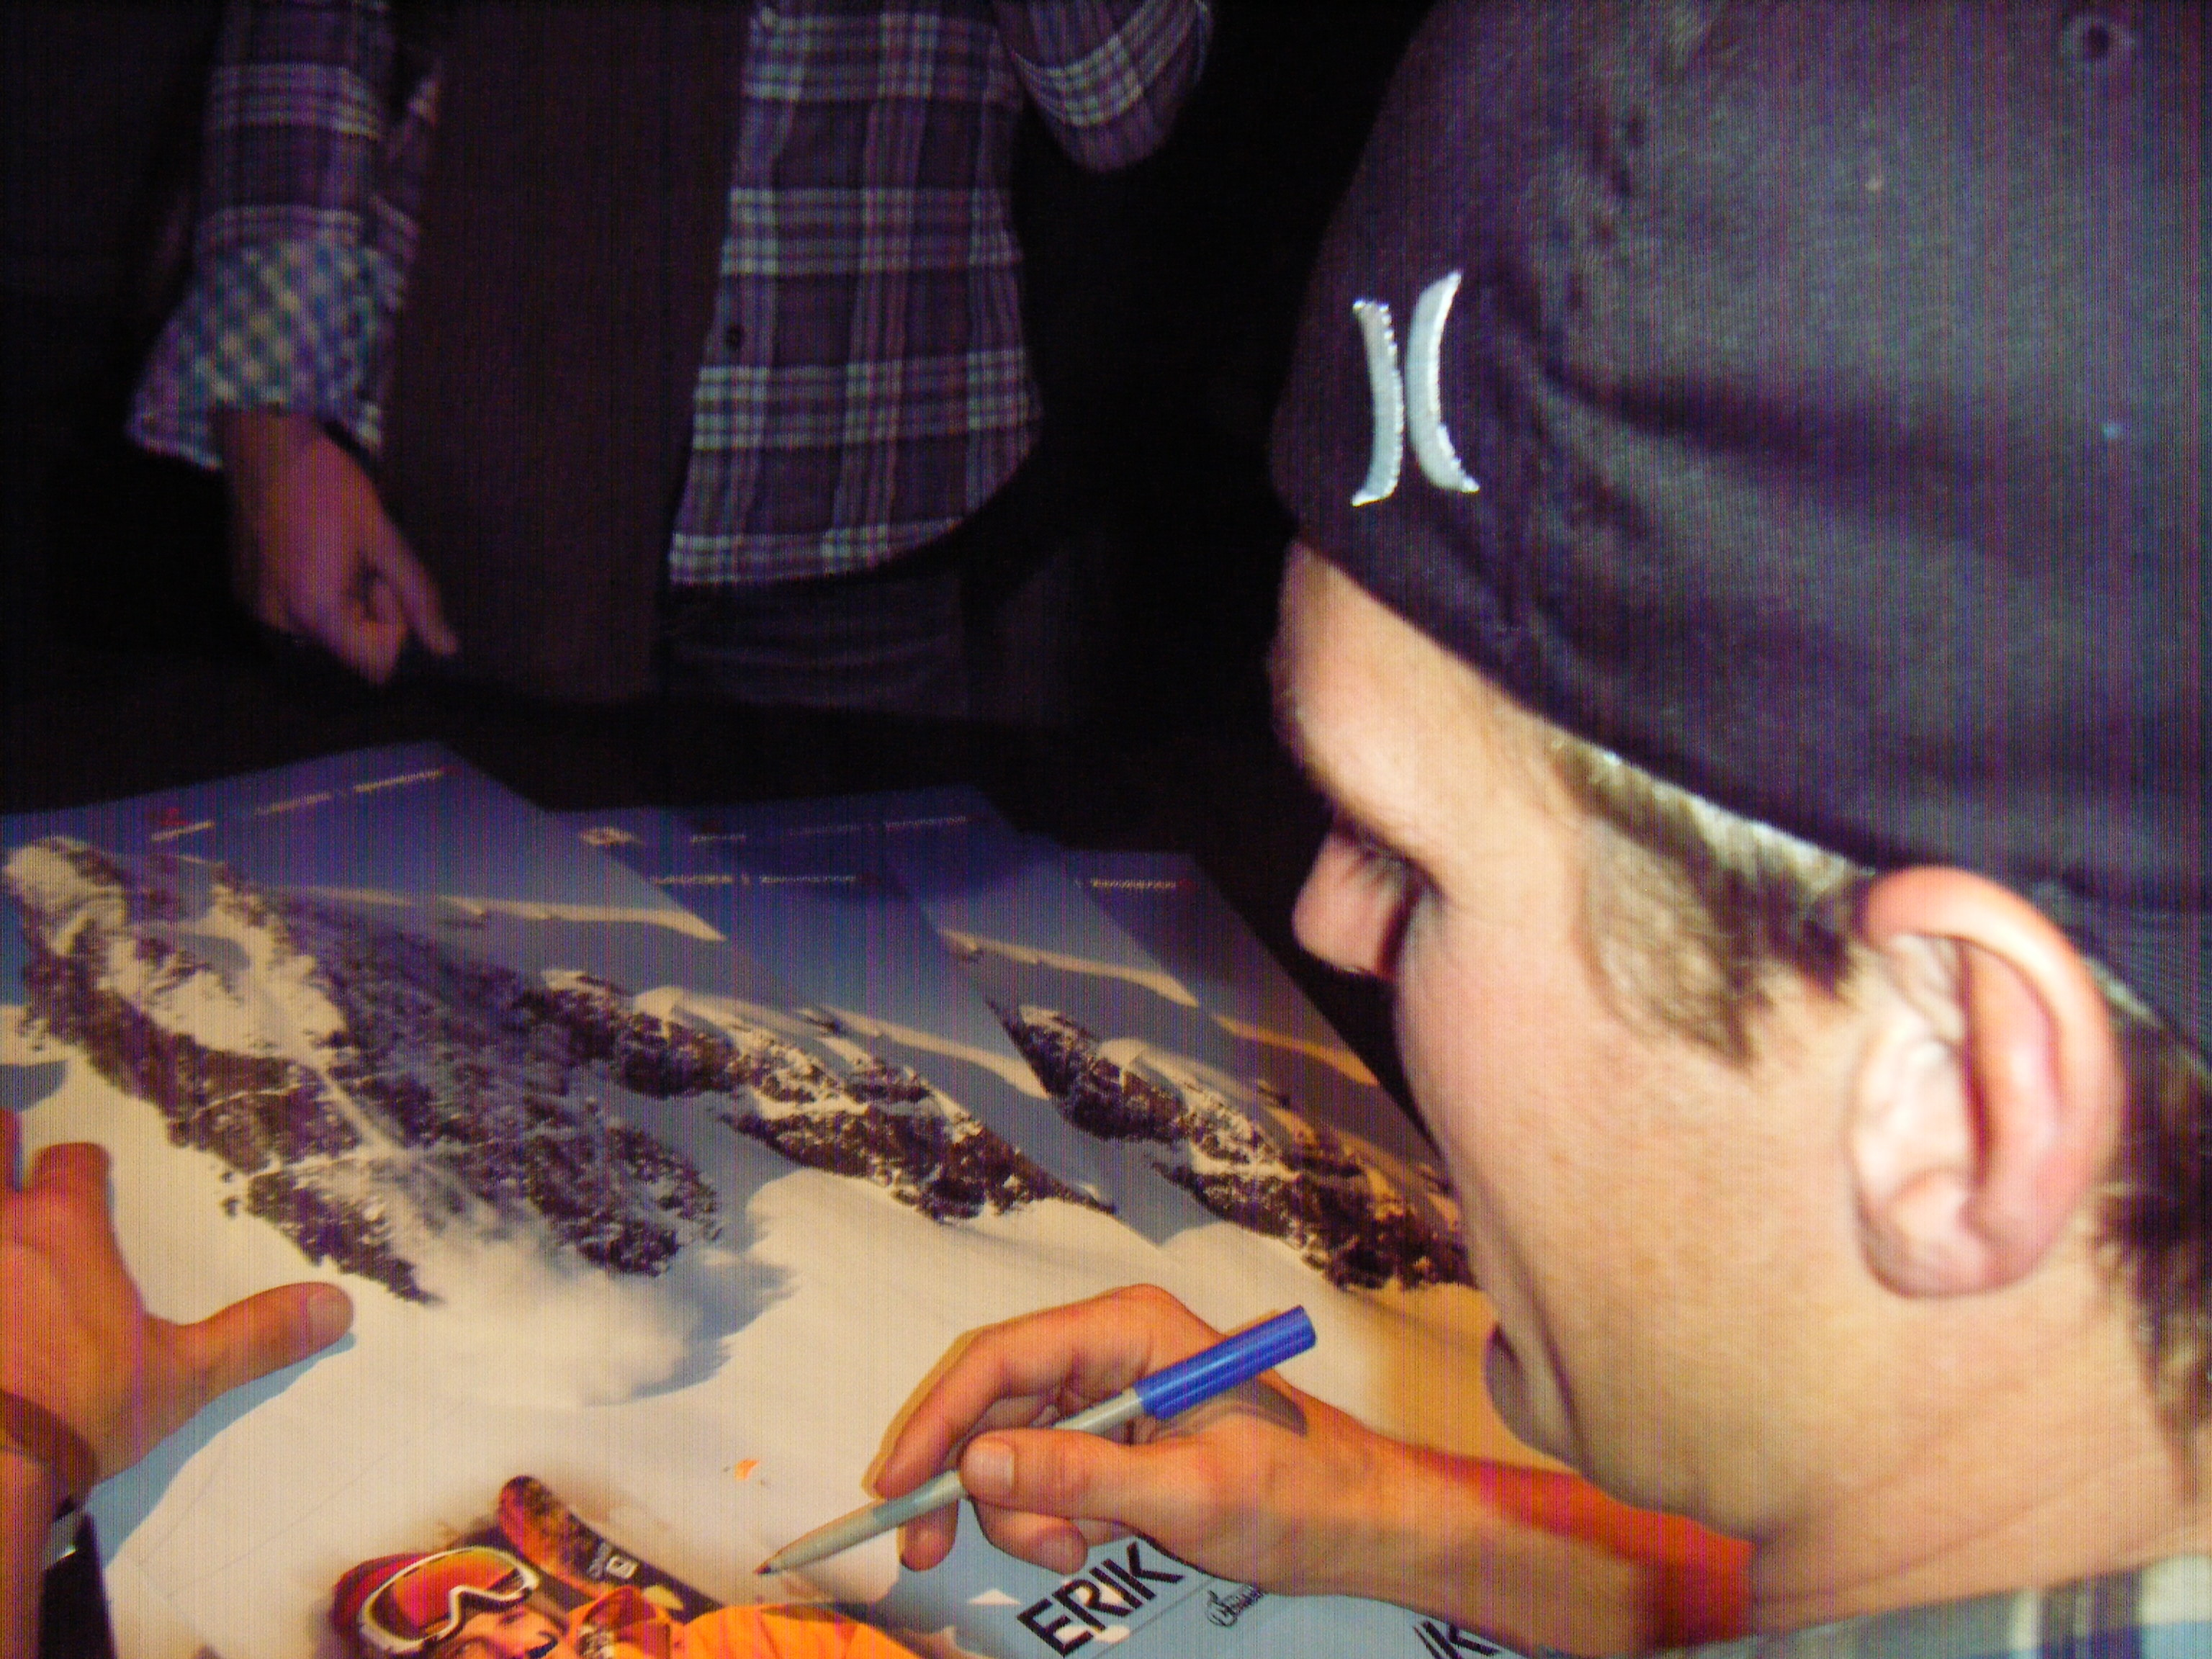 Erik Roner Signs Some Posters